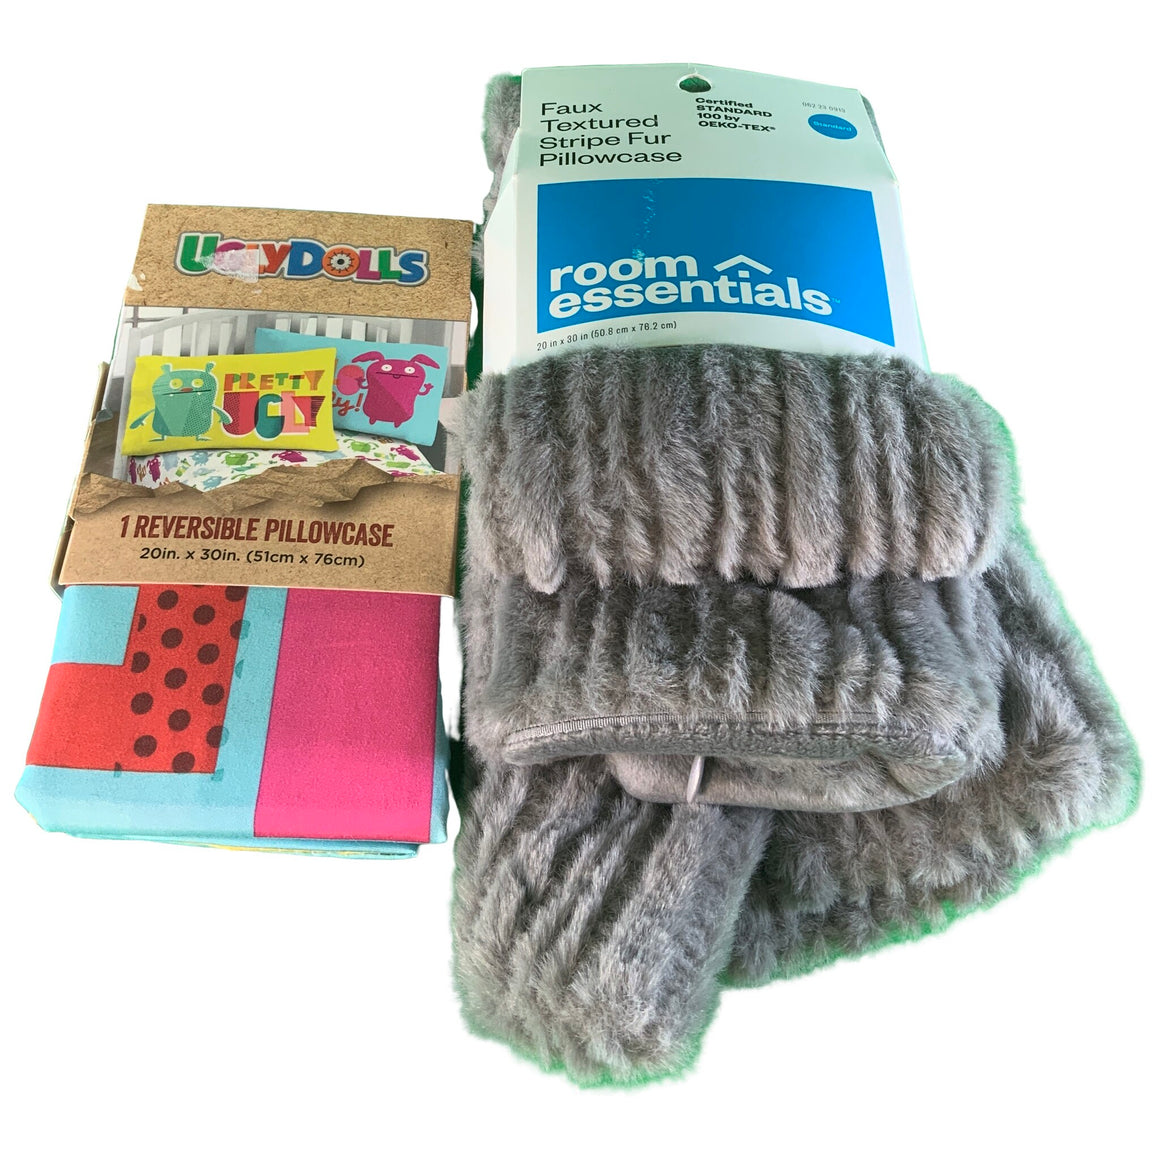 Reversible Pillowcase & Standard Striped Faux Fur Pillowcase - Uglydolls & Room Essentials™